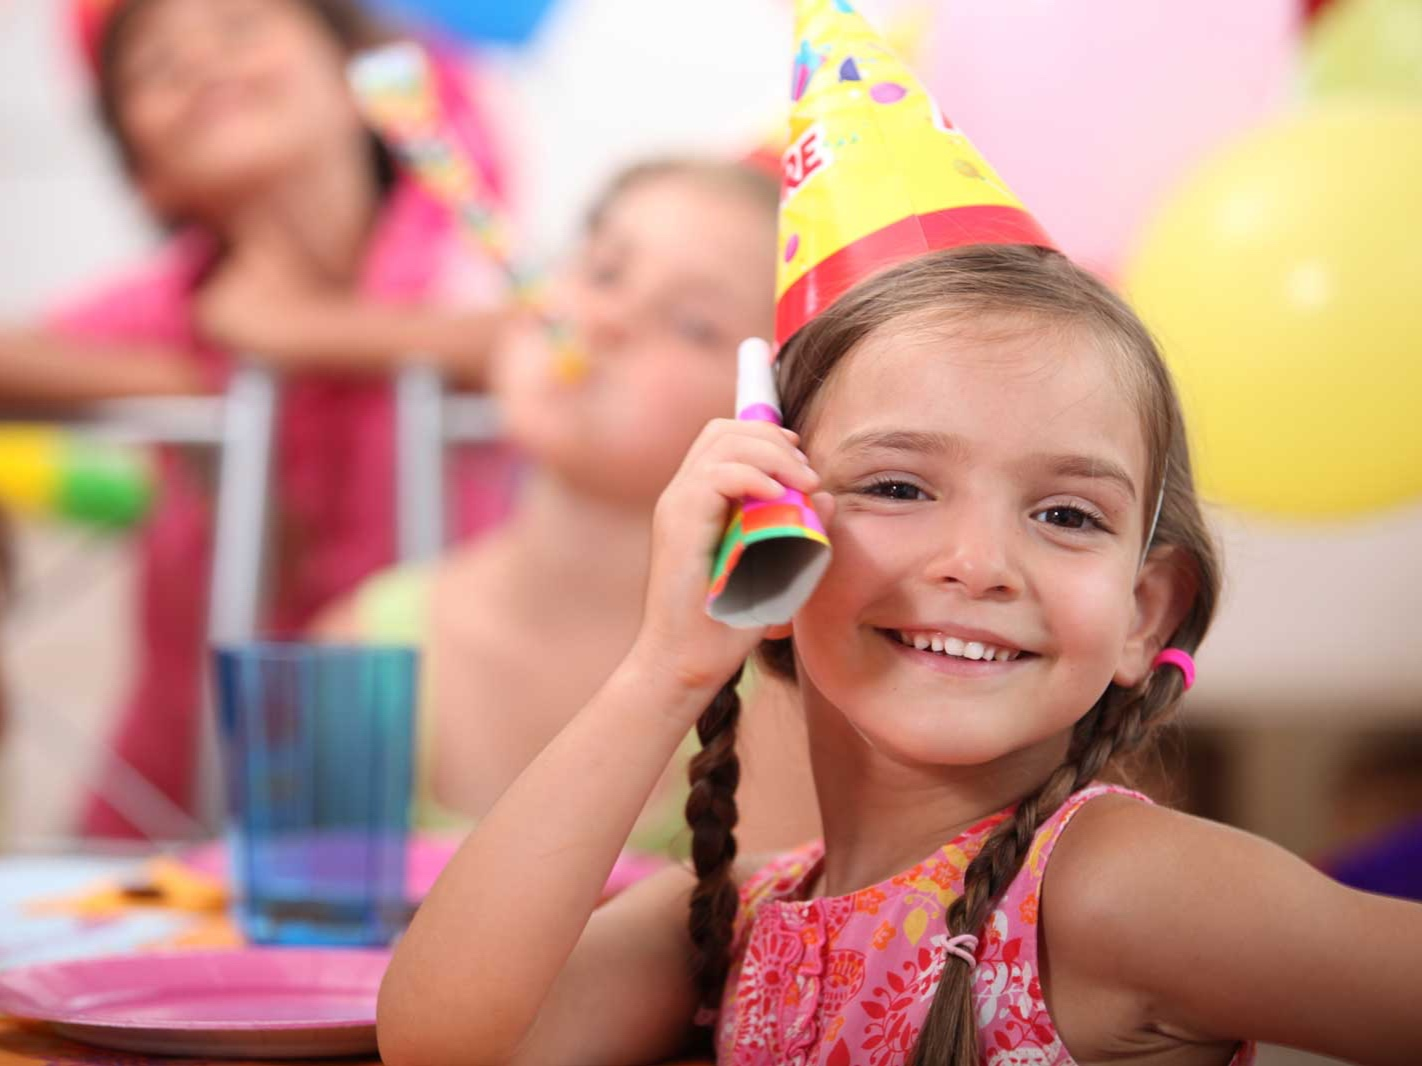 web-Young-girl-at-a-child-s-birthd-21049901.jpg